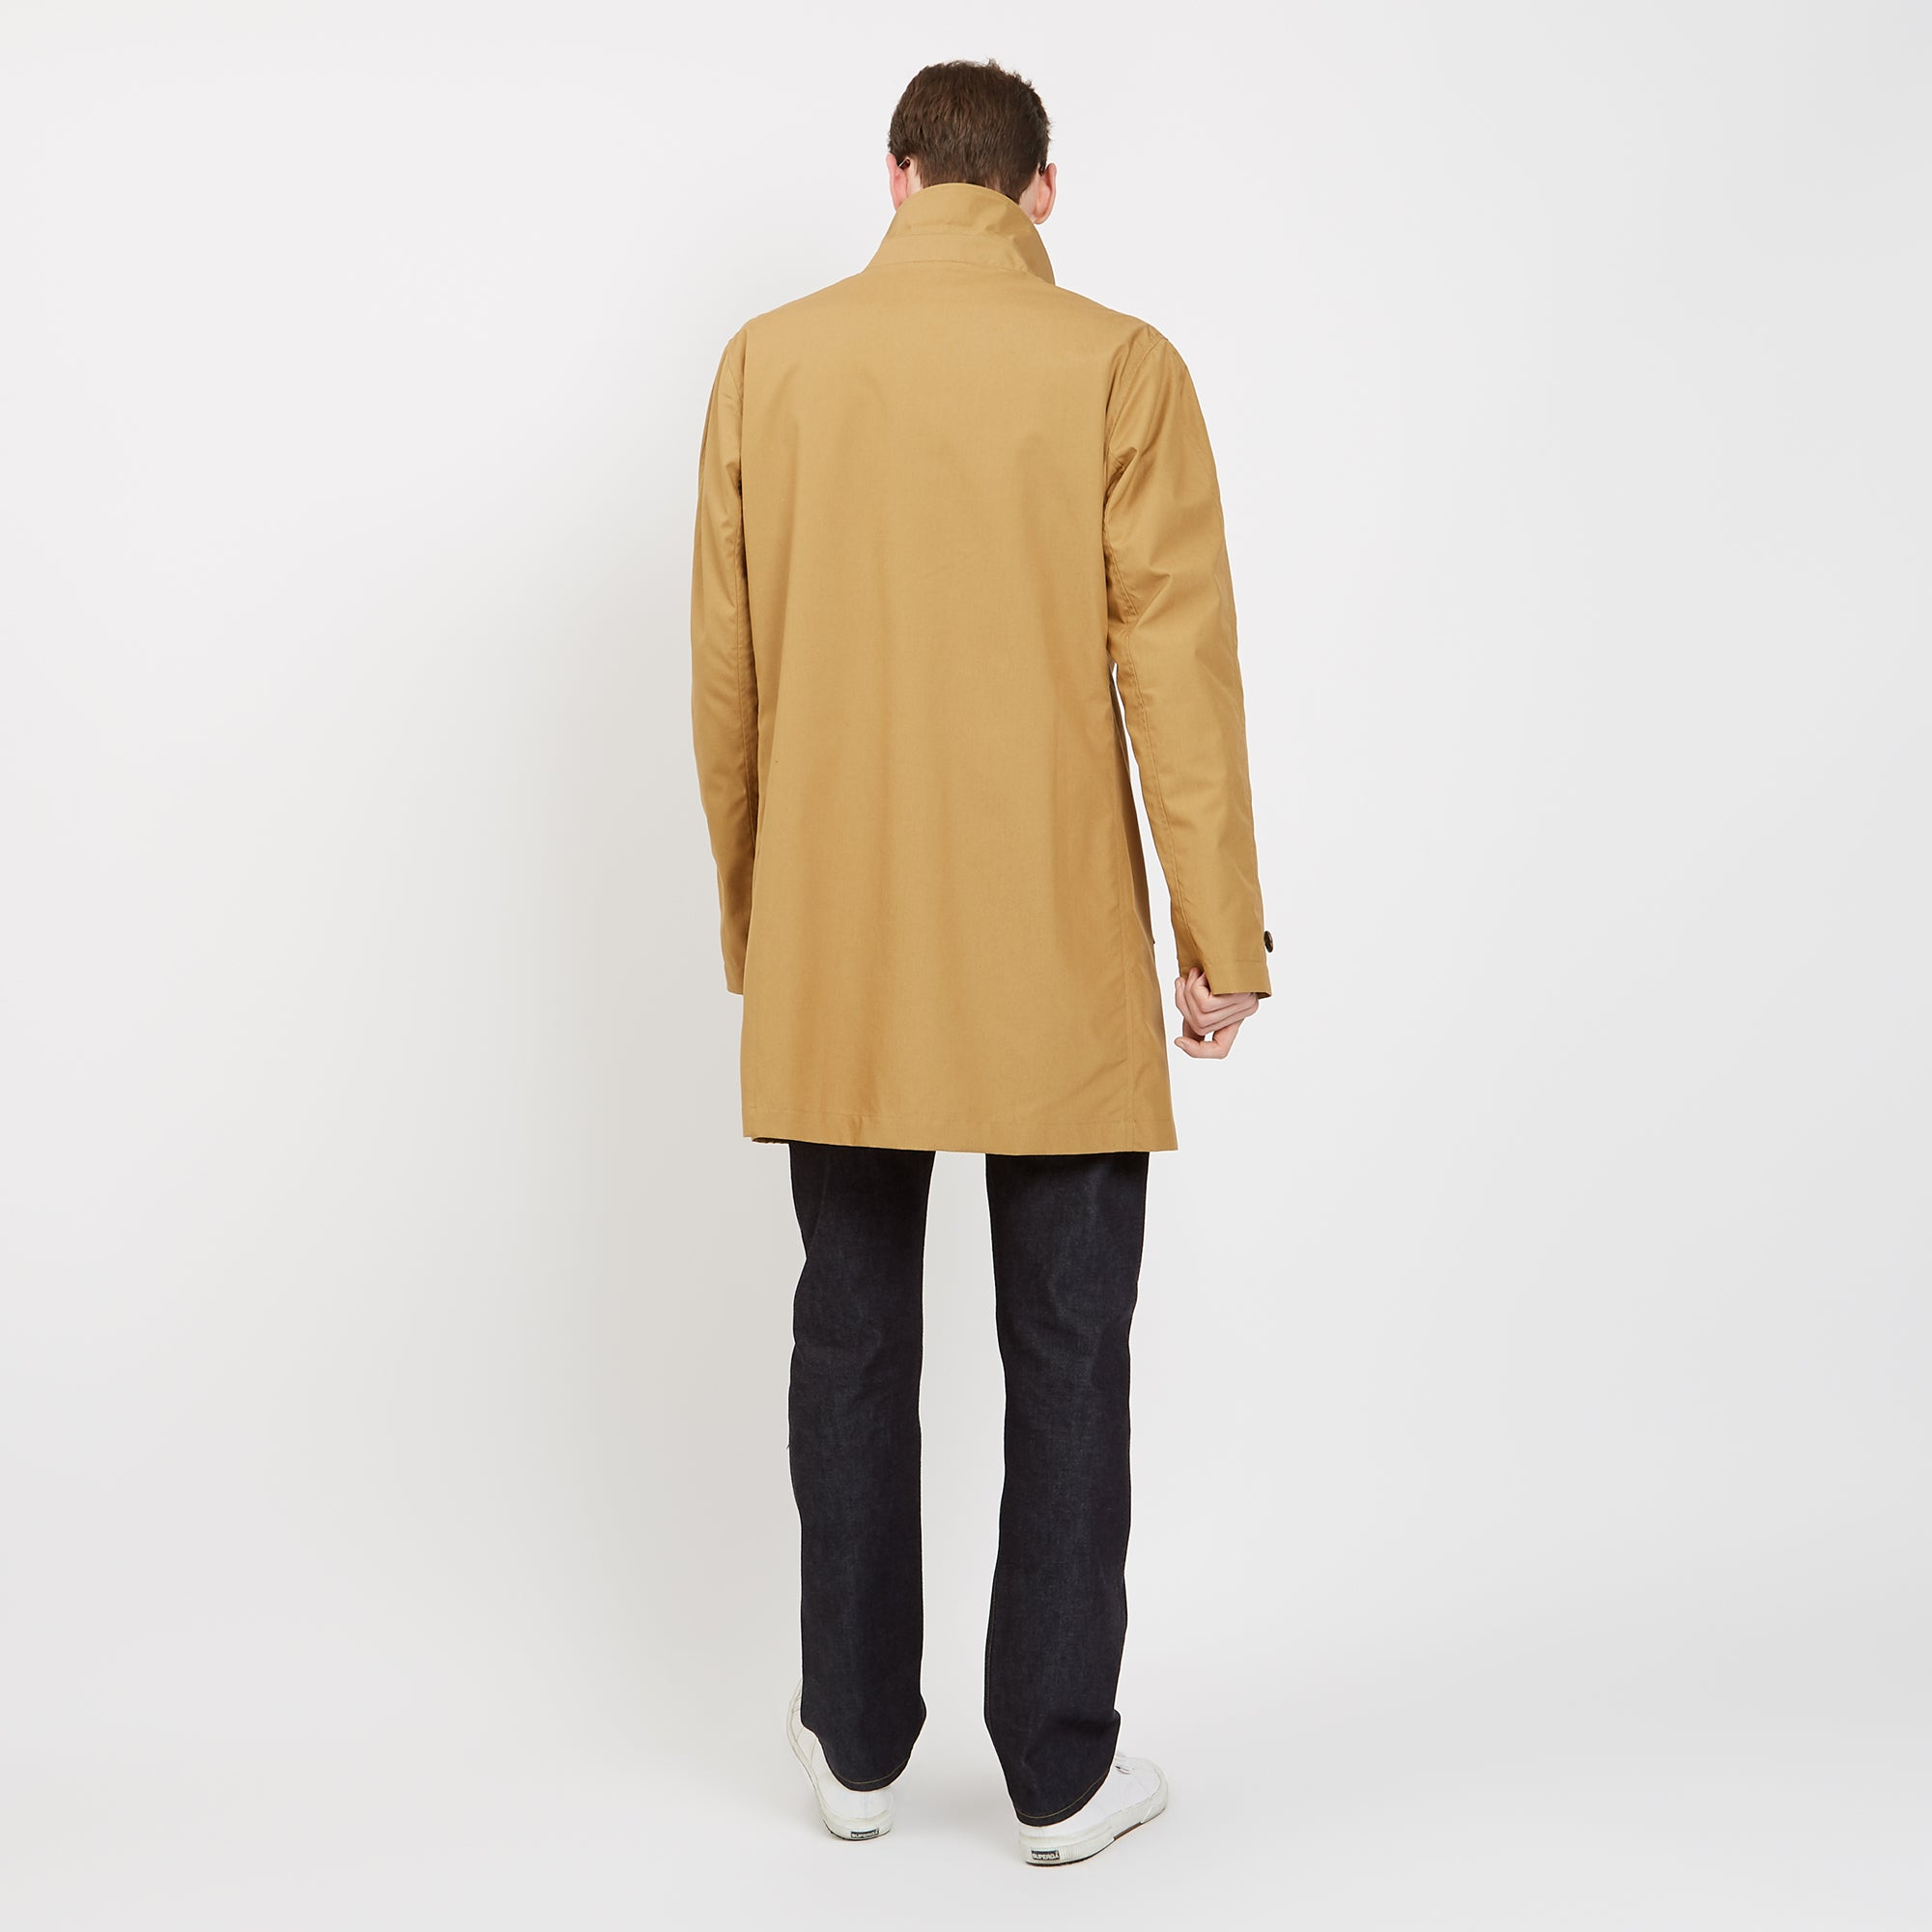 d3e3ec438e ... Men's Raincoat Camel - Community Clothing ...